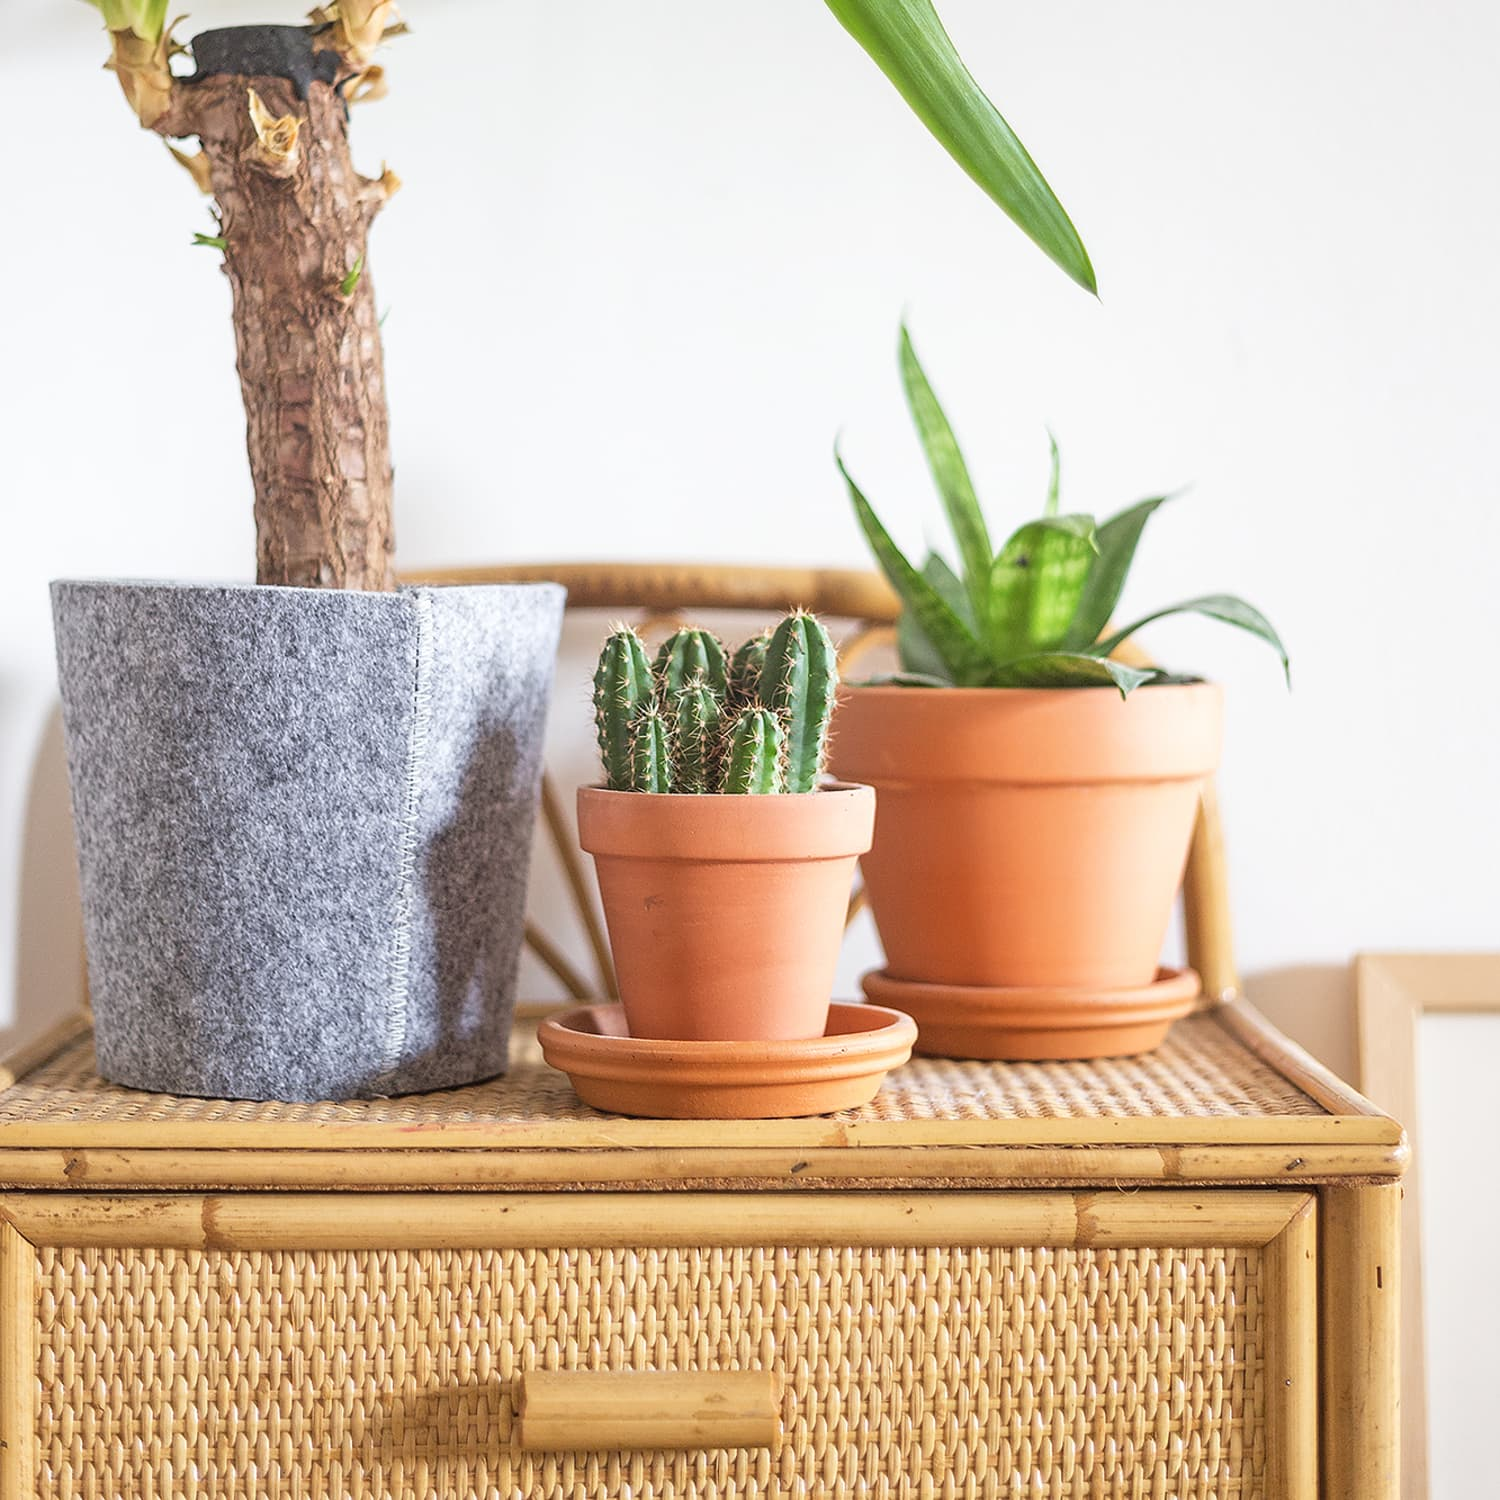 How to Care for Plants in Pots without Drainage Holes